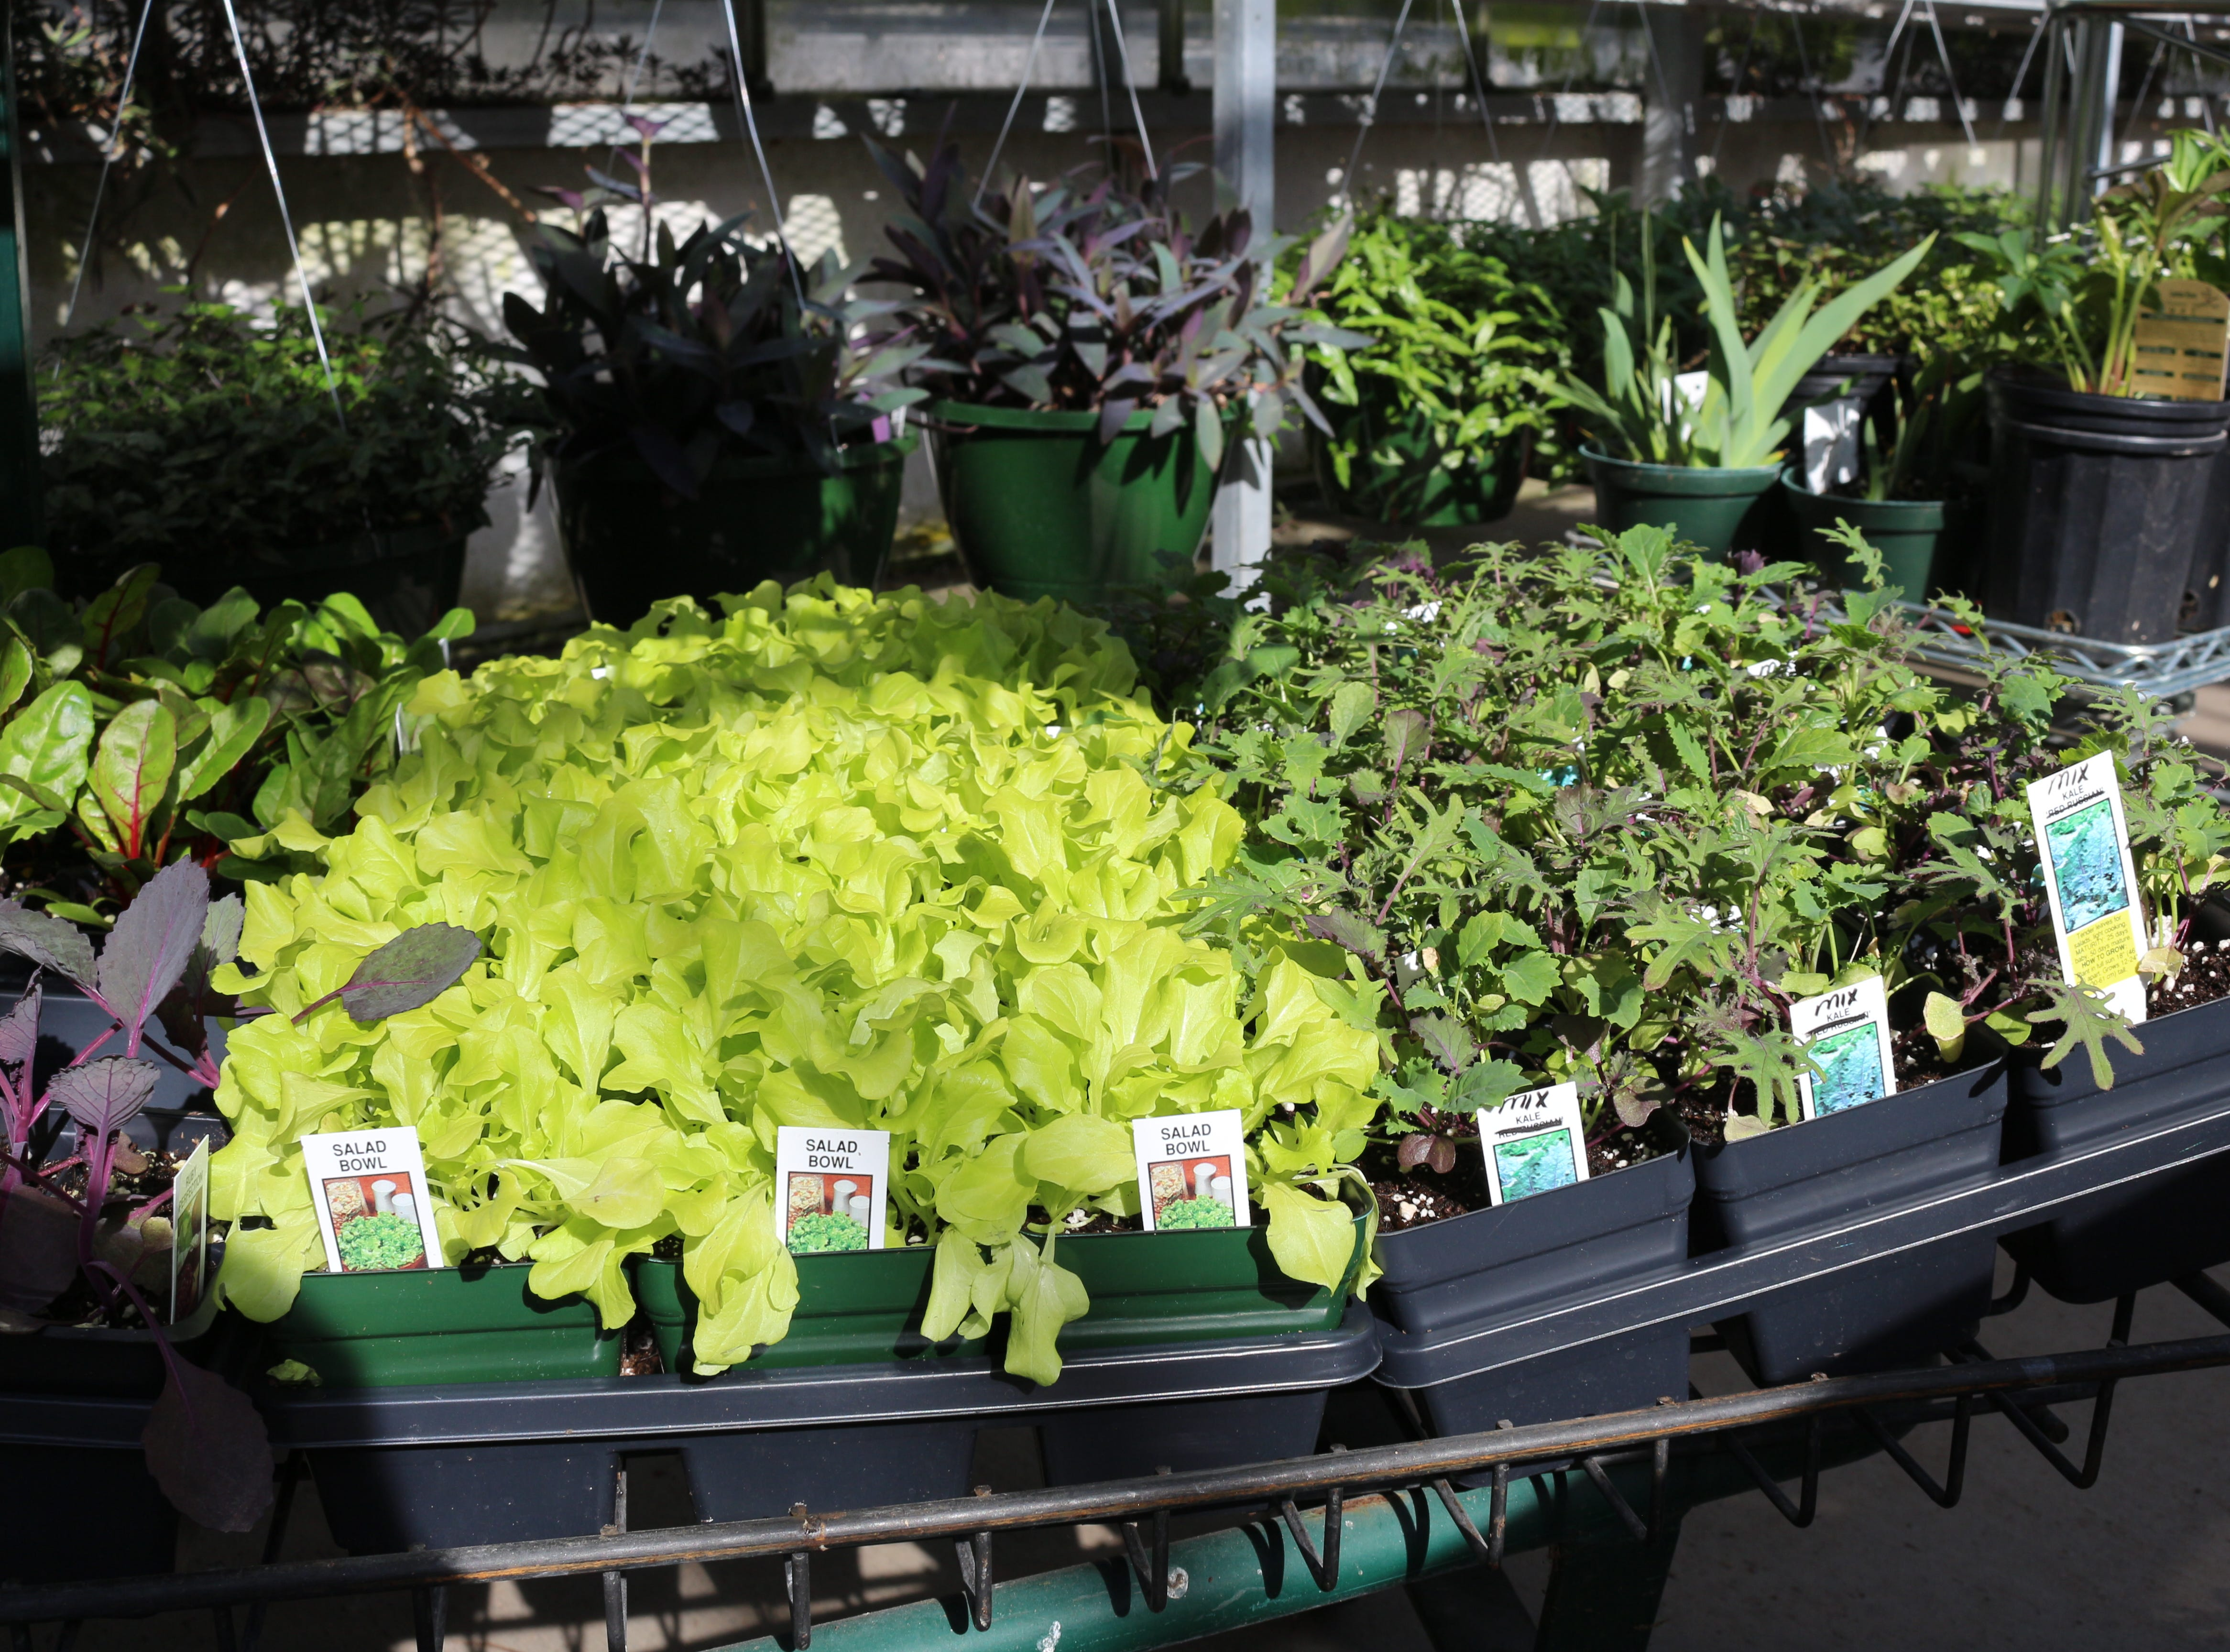 Need to chat with a plant whisperer in person? In March, April, May and June, Stanley's Greenhouse will be open Sundays from noon to five, in addition to their usual weekly hours.